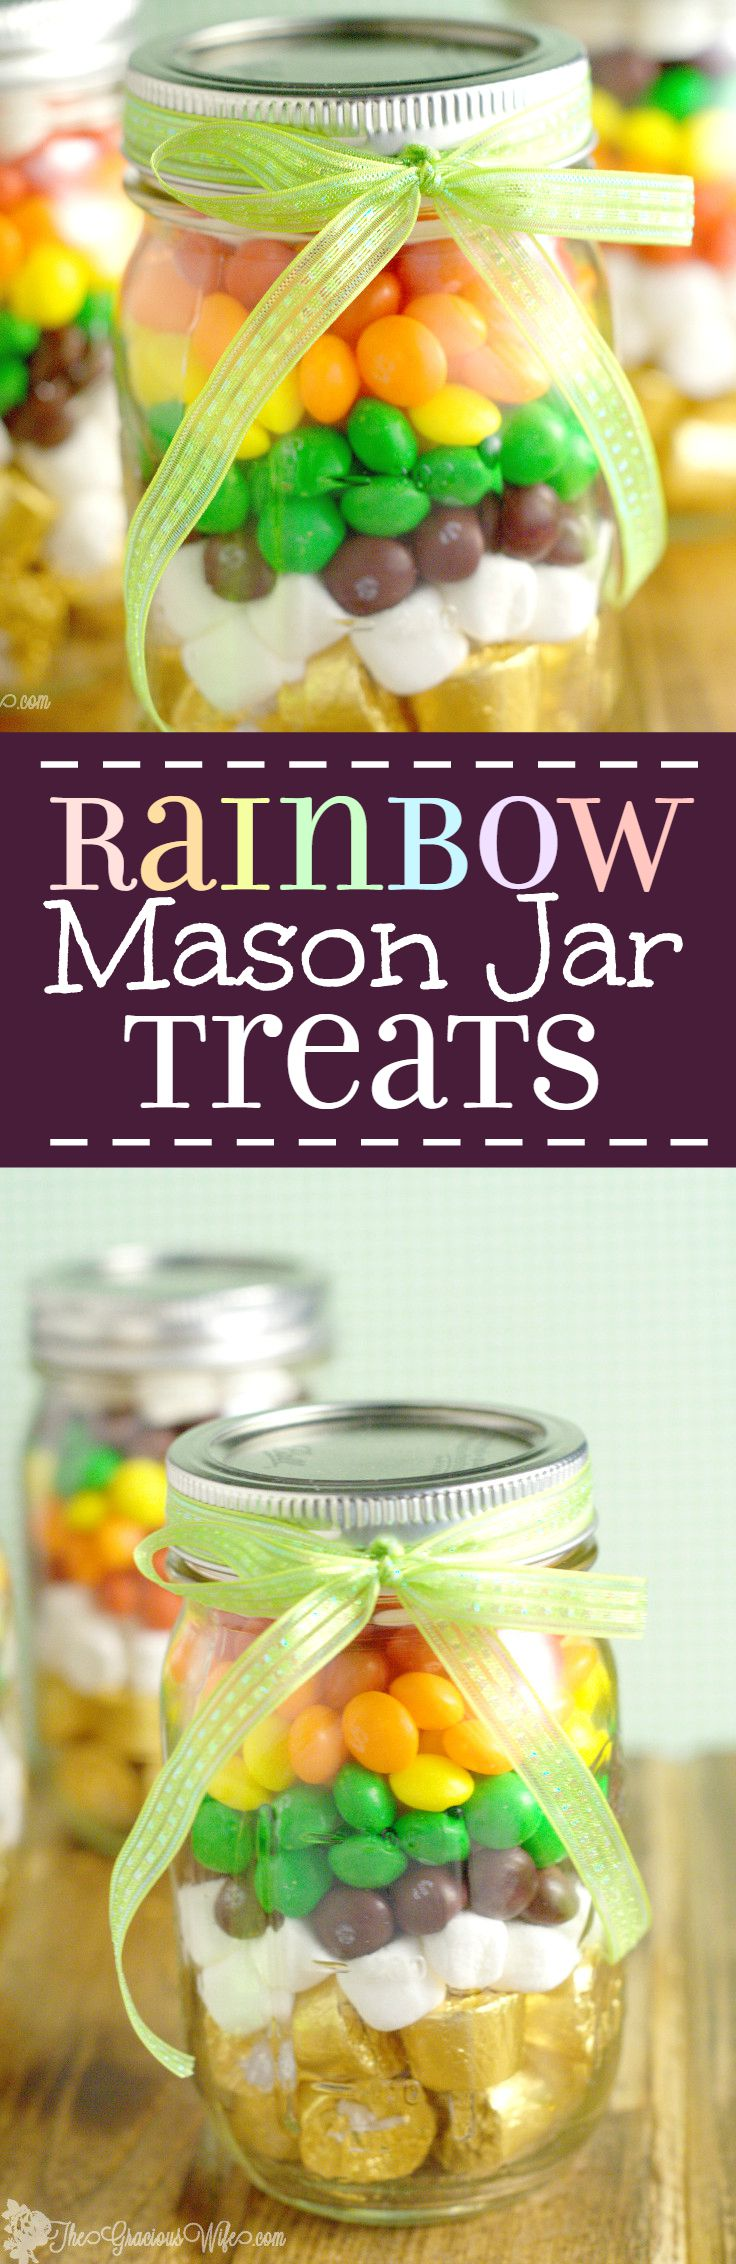 Rainbow Mason Jar Treats -a fun St Patrick's Day treat in a mason jar, perfect for kids or a DIY gift idea for teachers or friends.  Super cute rainbow party favor too! | DIY crafts | mason jars